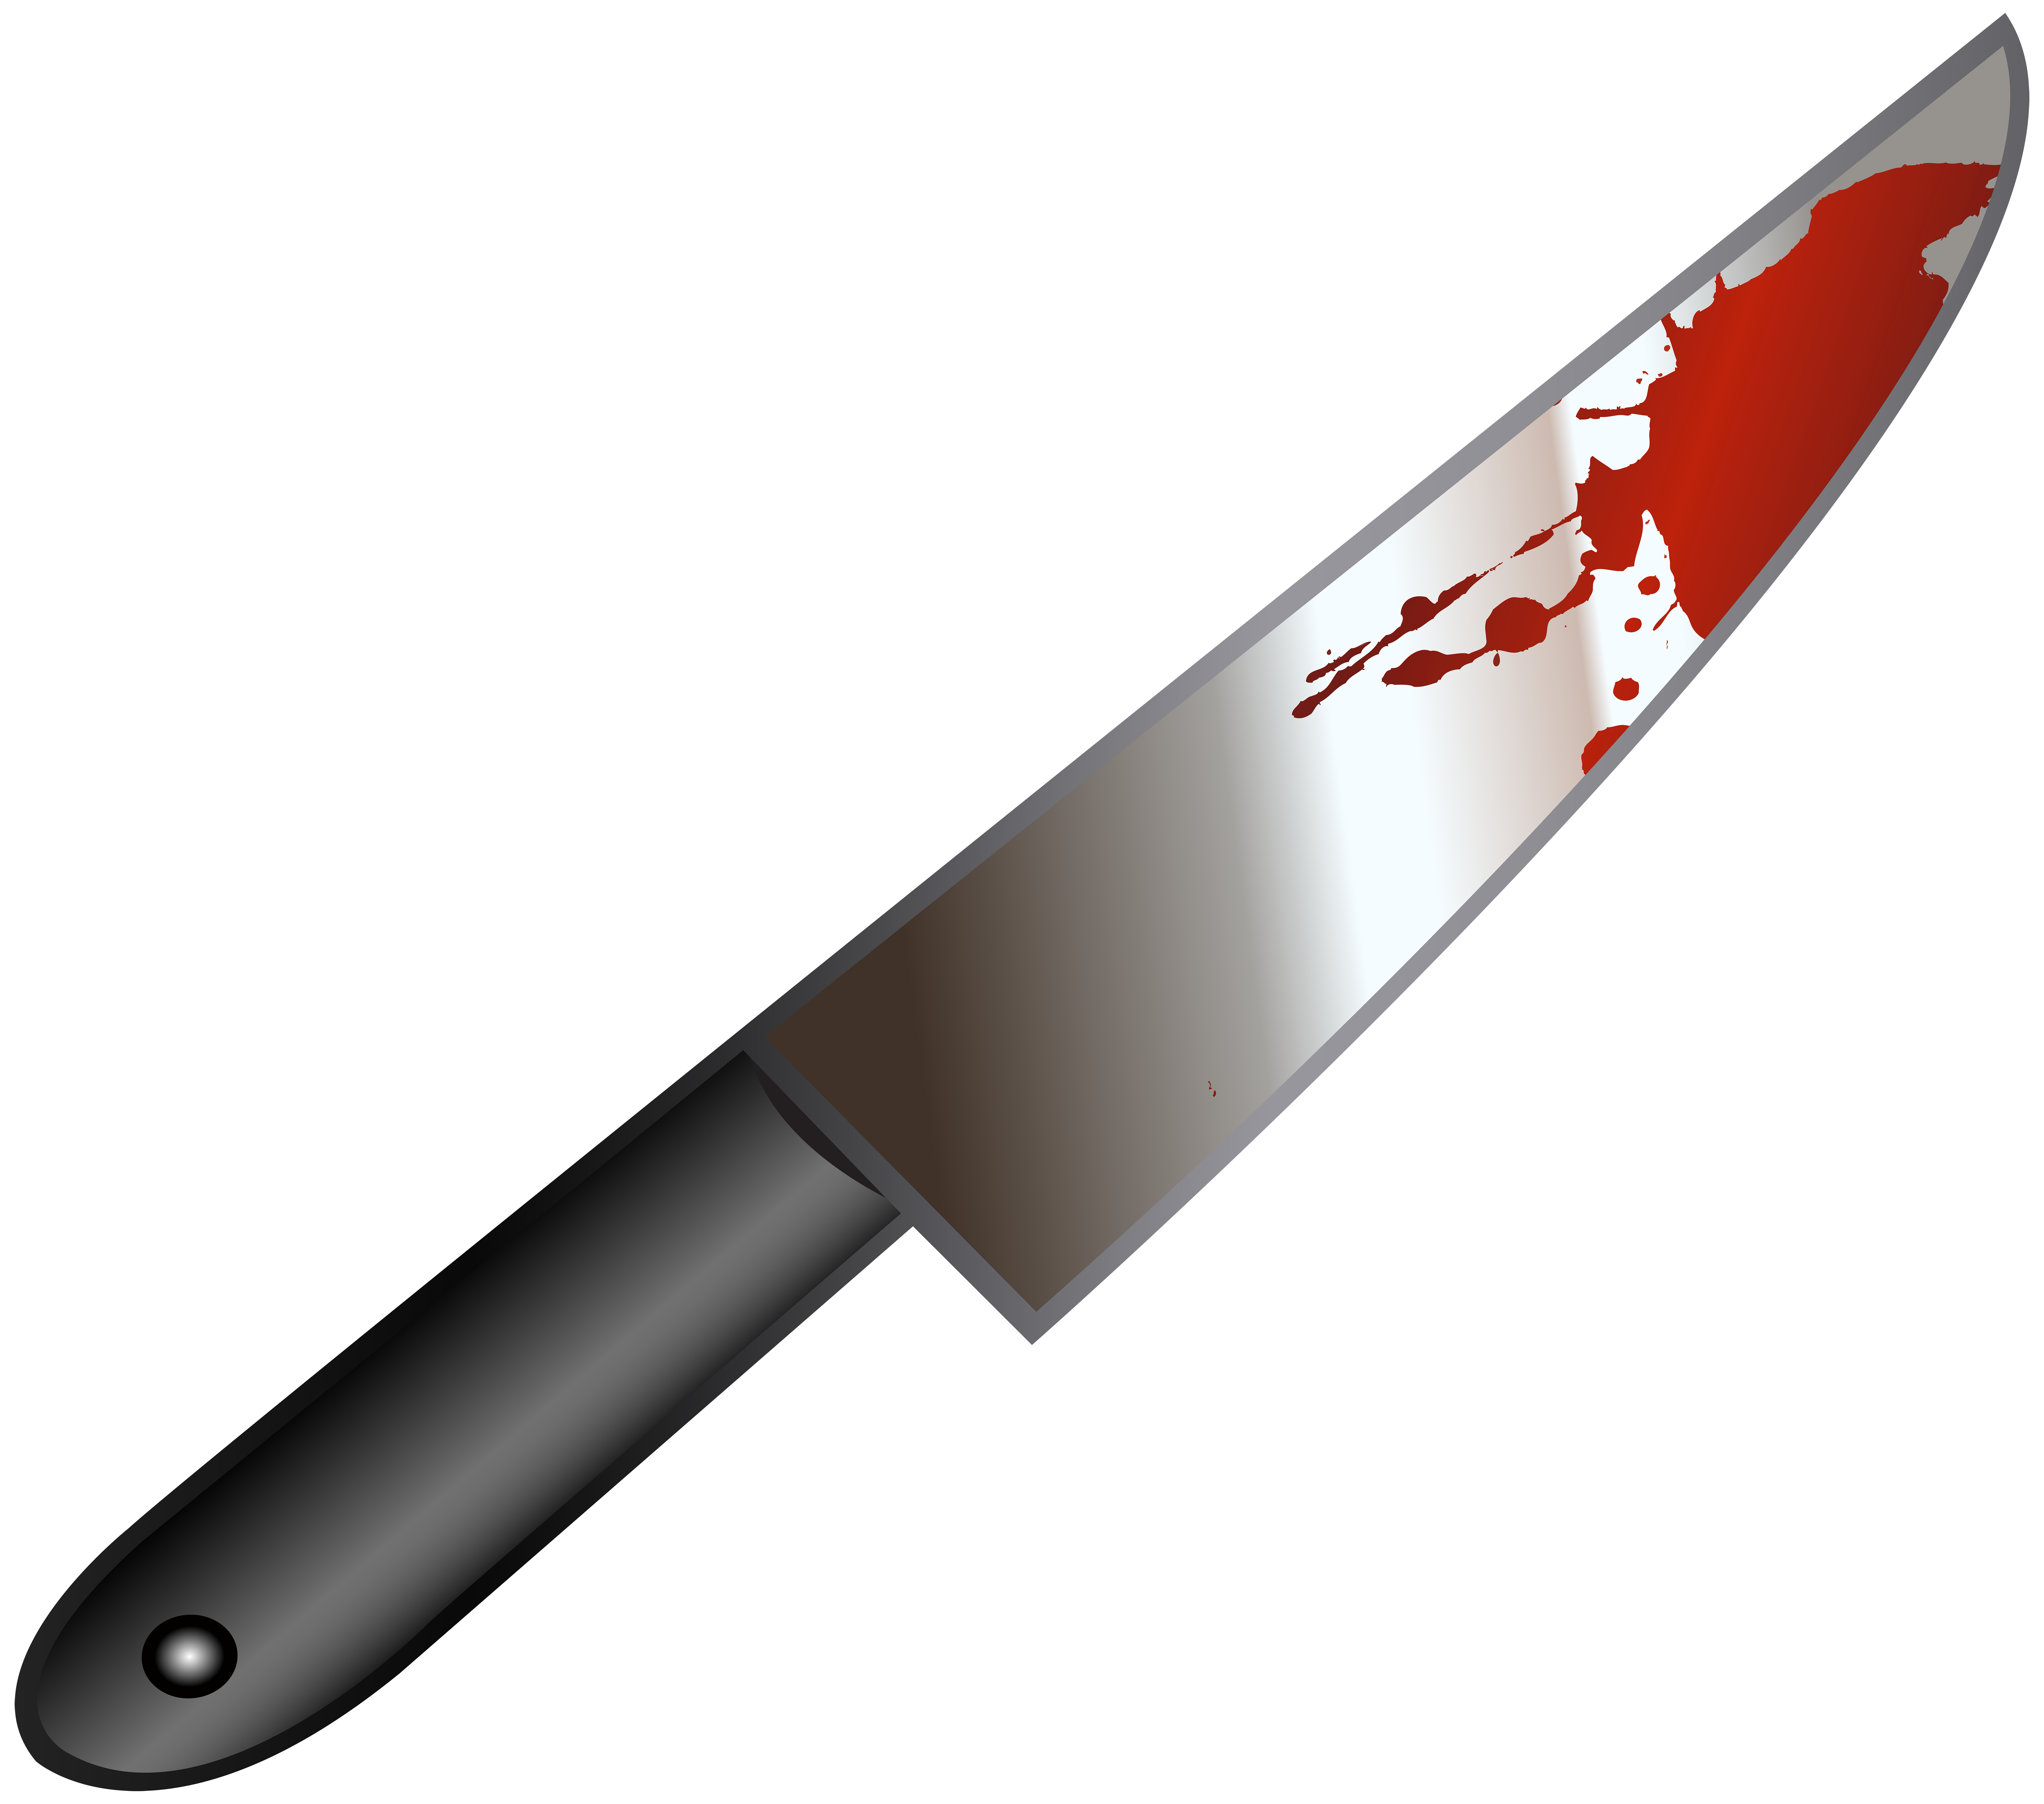 Knife clipart png picture library download Bloody Knife PNG Clip Art Image | Gallery Yopriceville ... picture library download